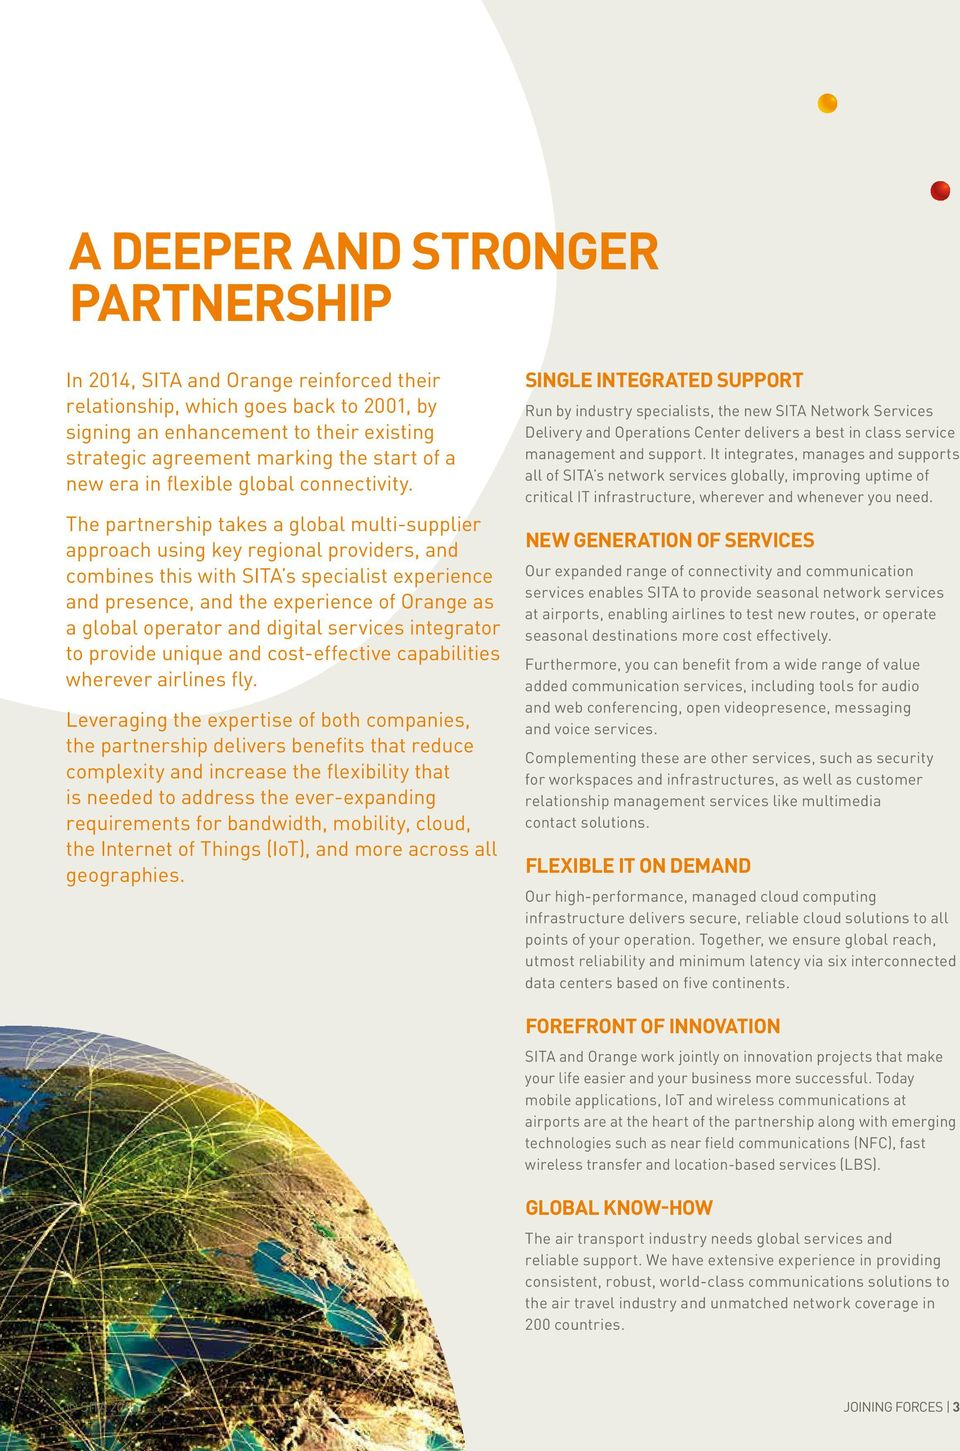 The partnership takes a global multi-supplier approach using key regional providers, and combines this with SITA s specialist experience and presence, and the experience of Orange as a global